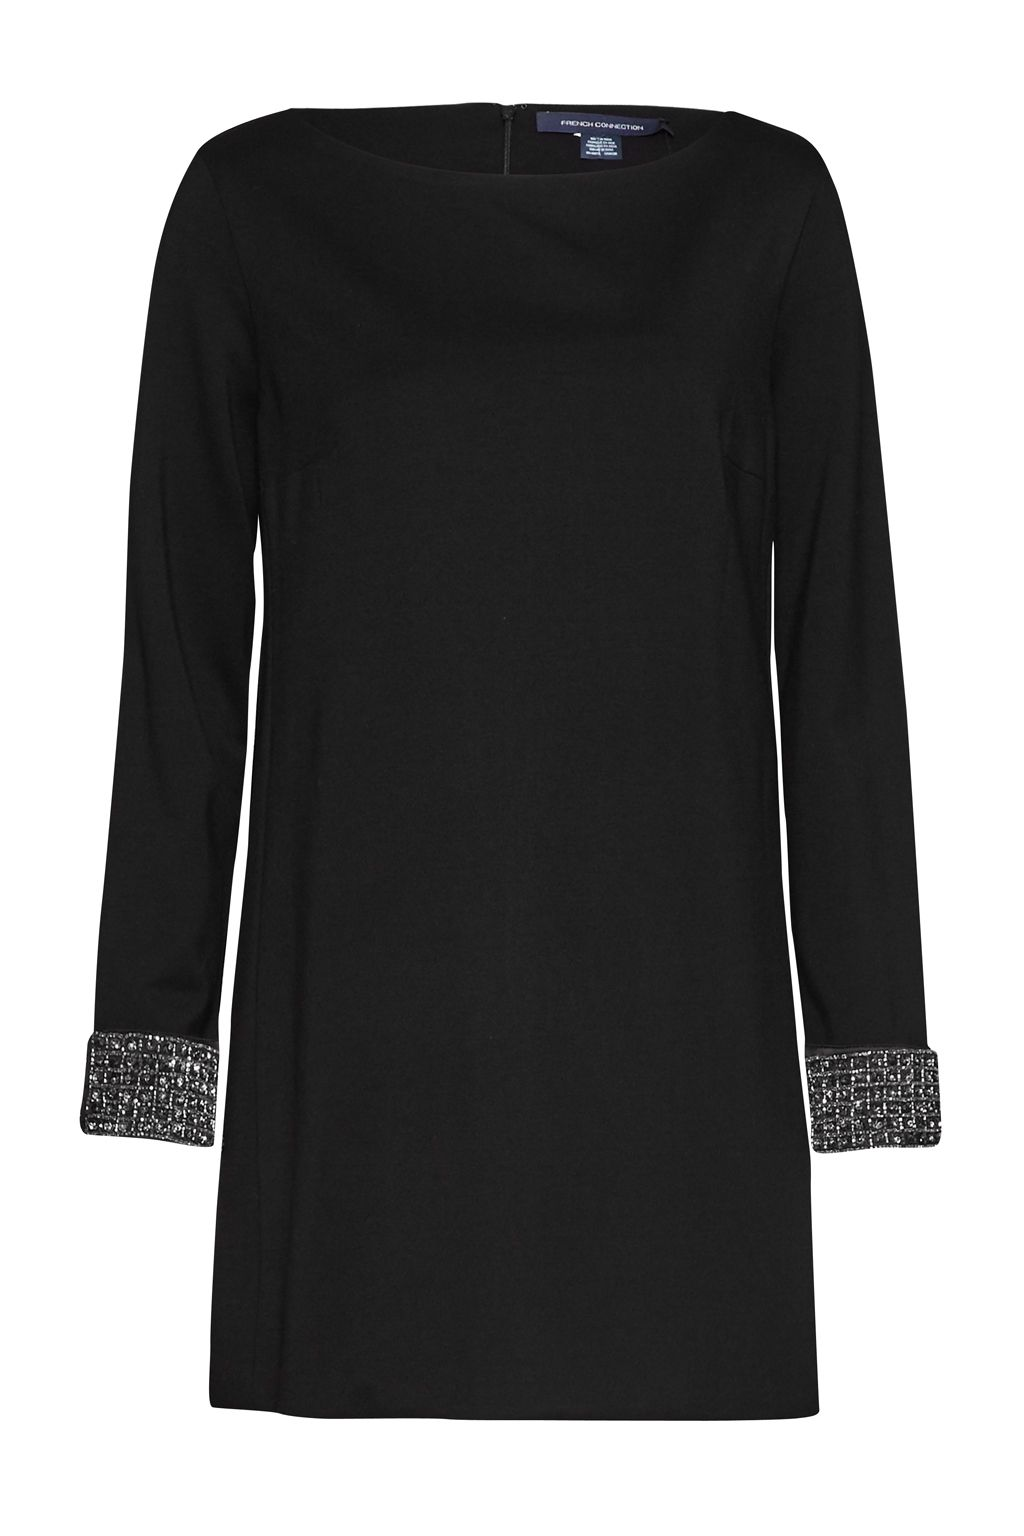 French Connection Crystal Shot Tunic Dress, Black